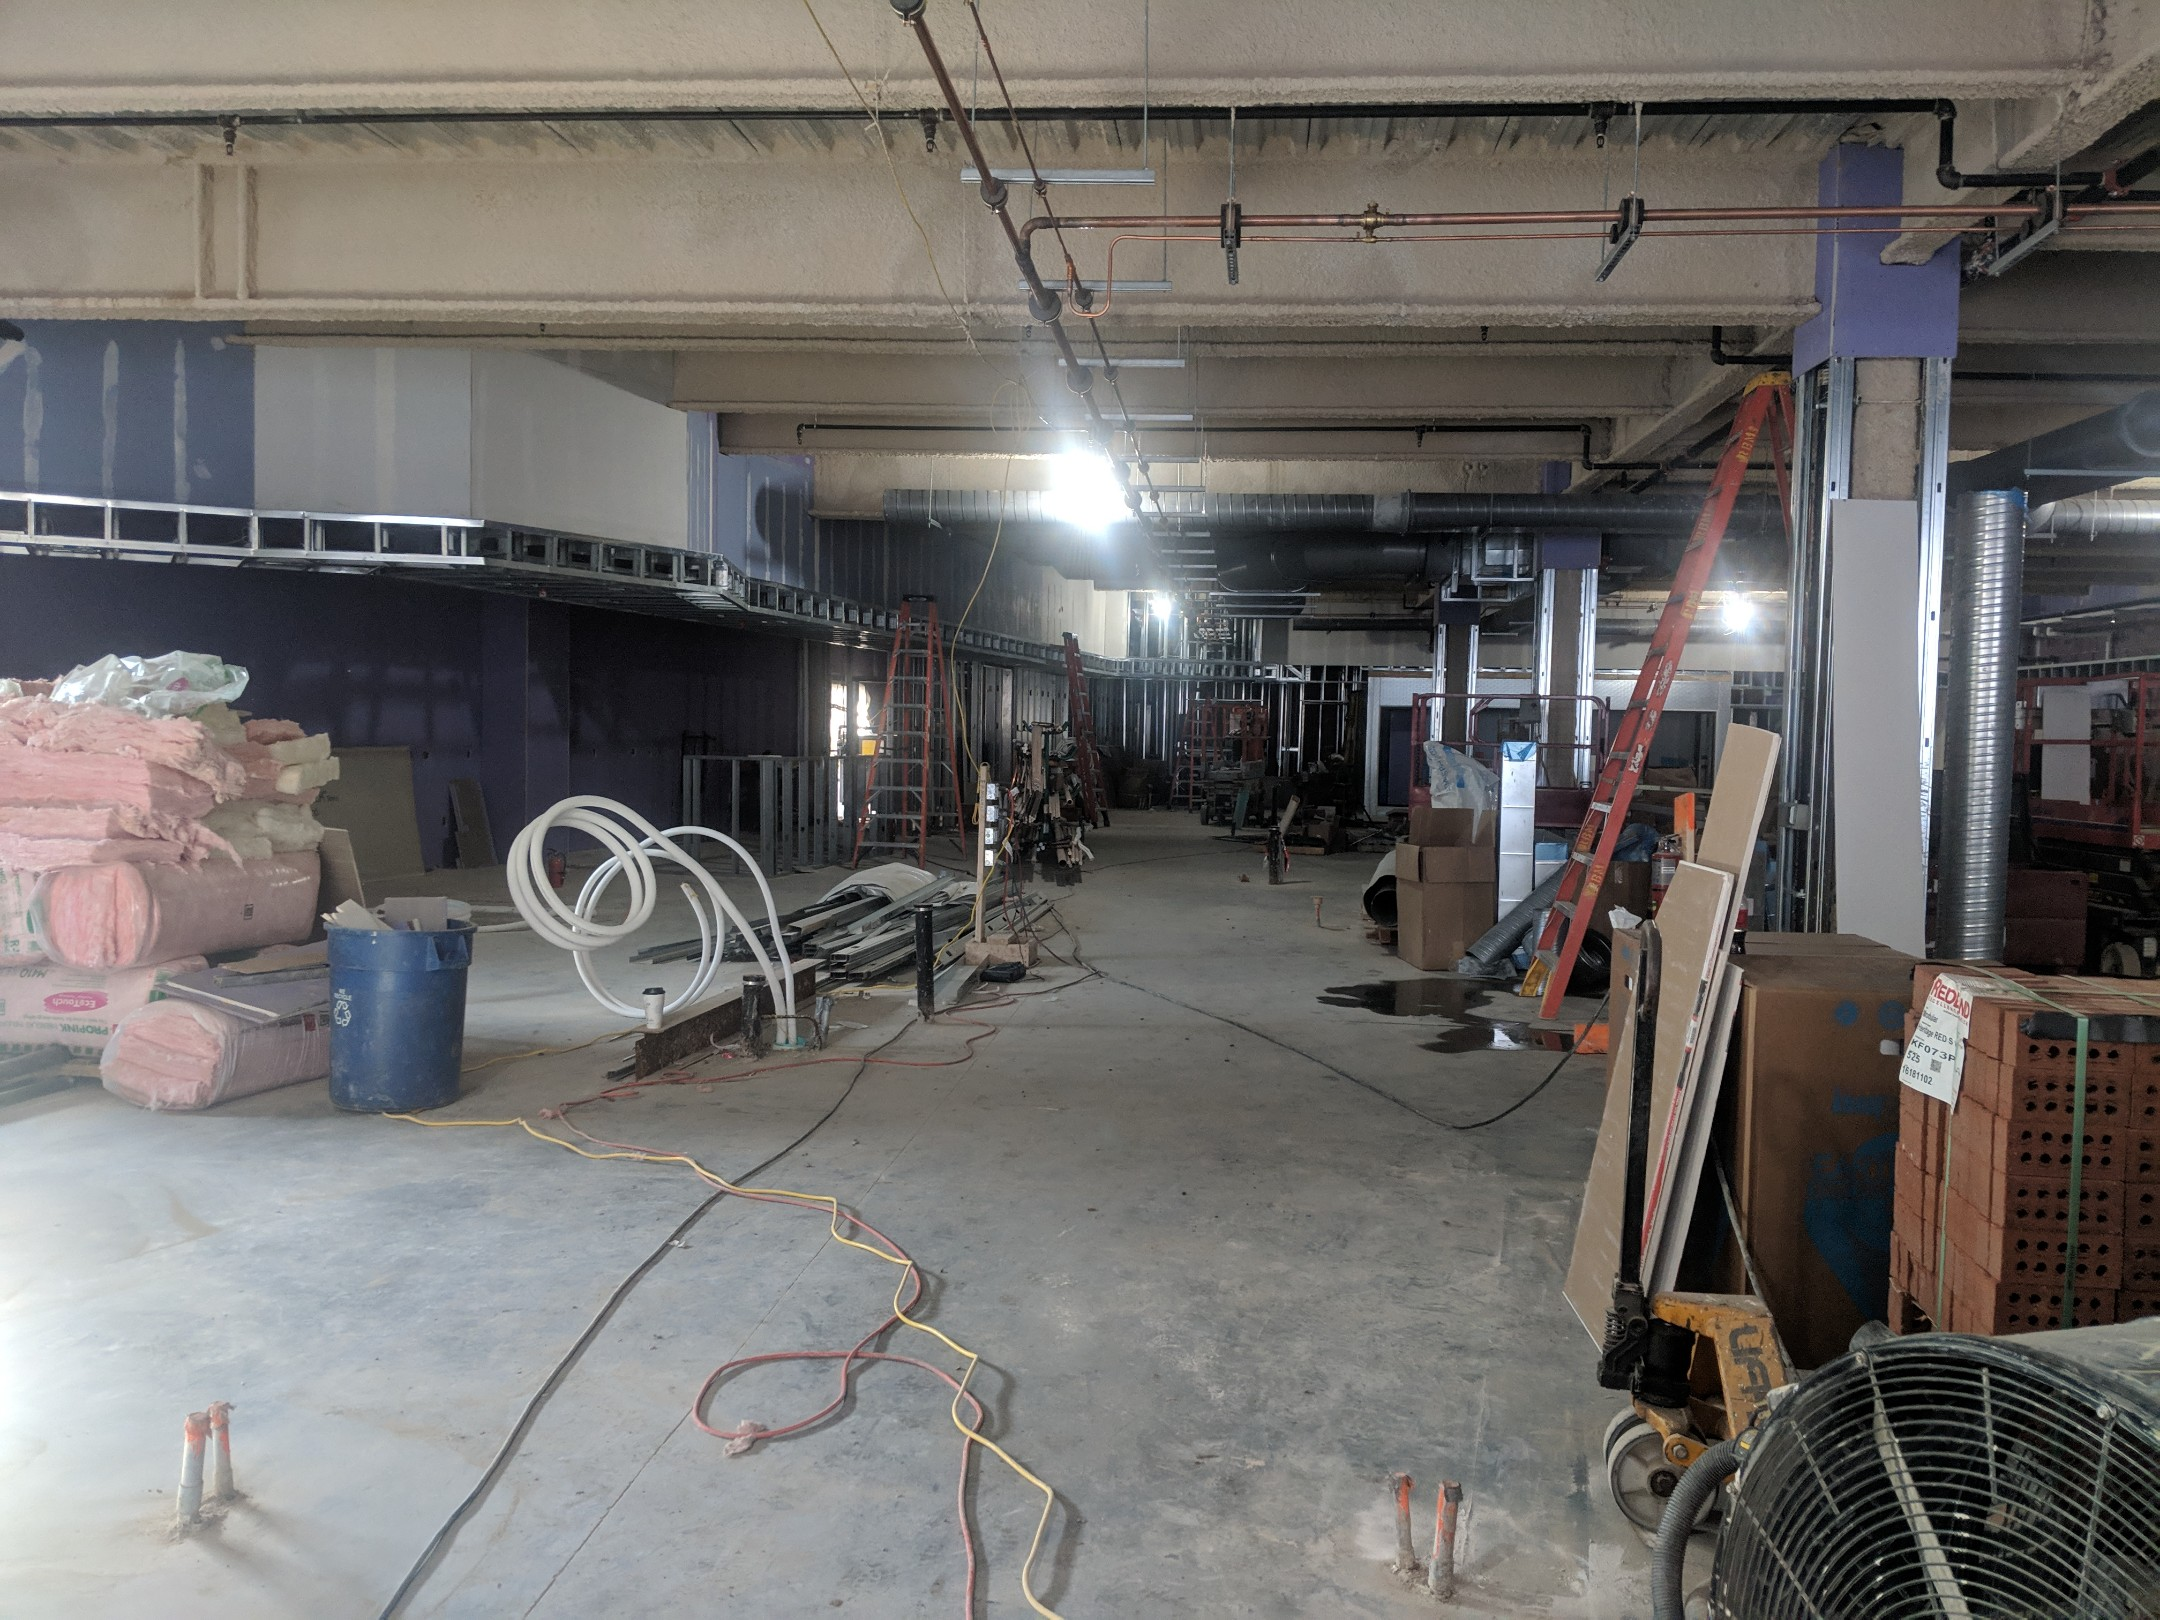 MARCH 8, 2019 - Sheetrock going up!